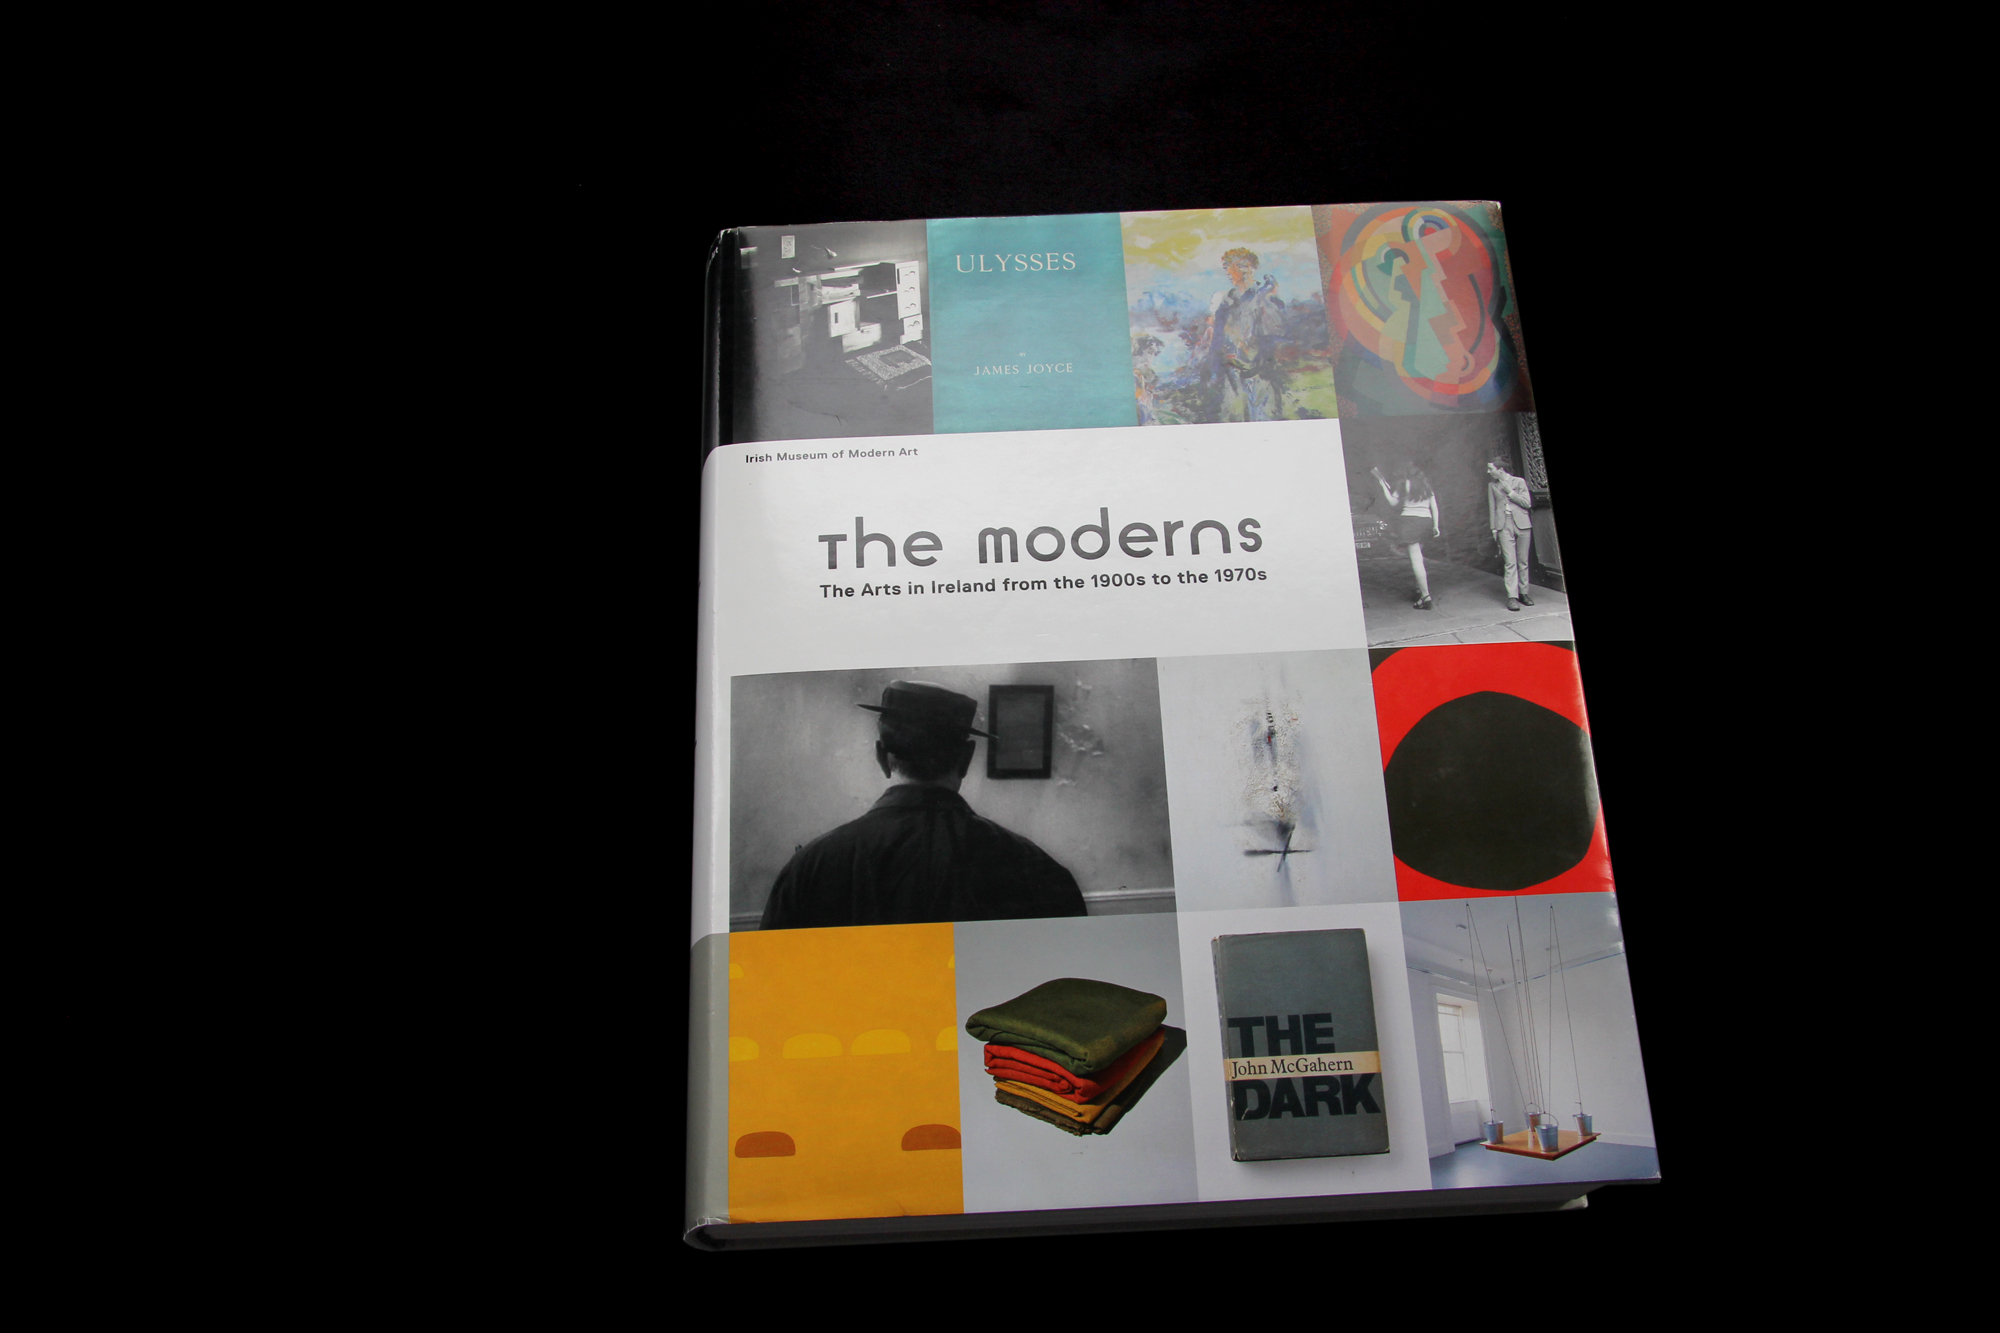 Cover image: The Moderns The arts in Ireland from the 1900s to the 1970s (2011)